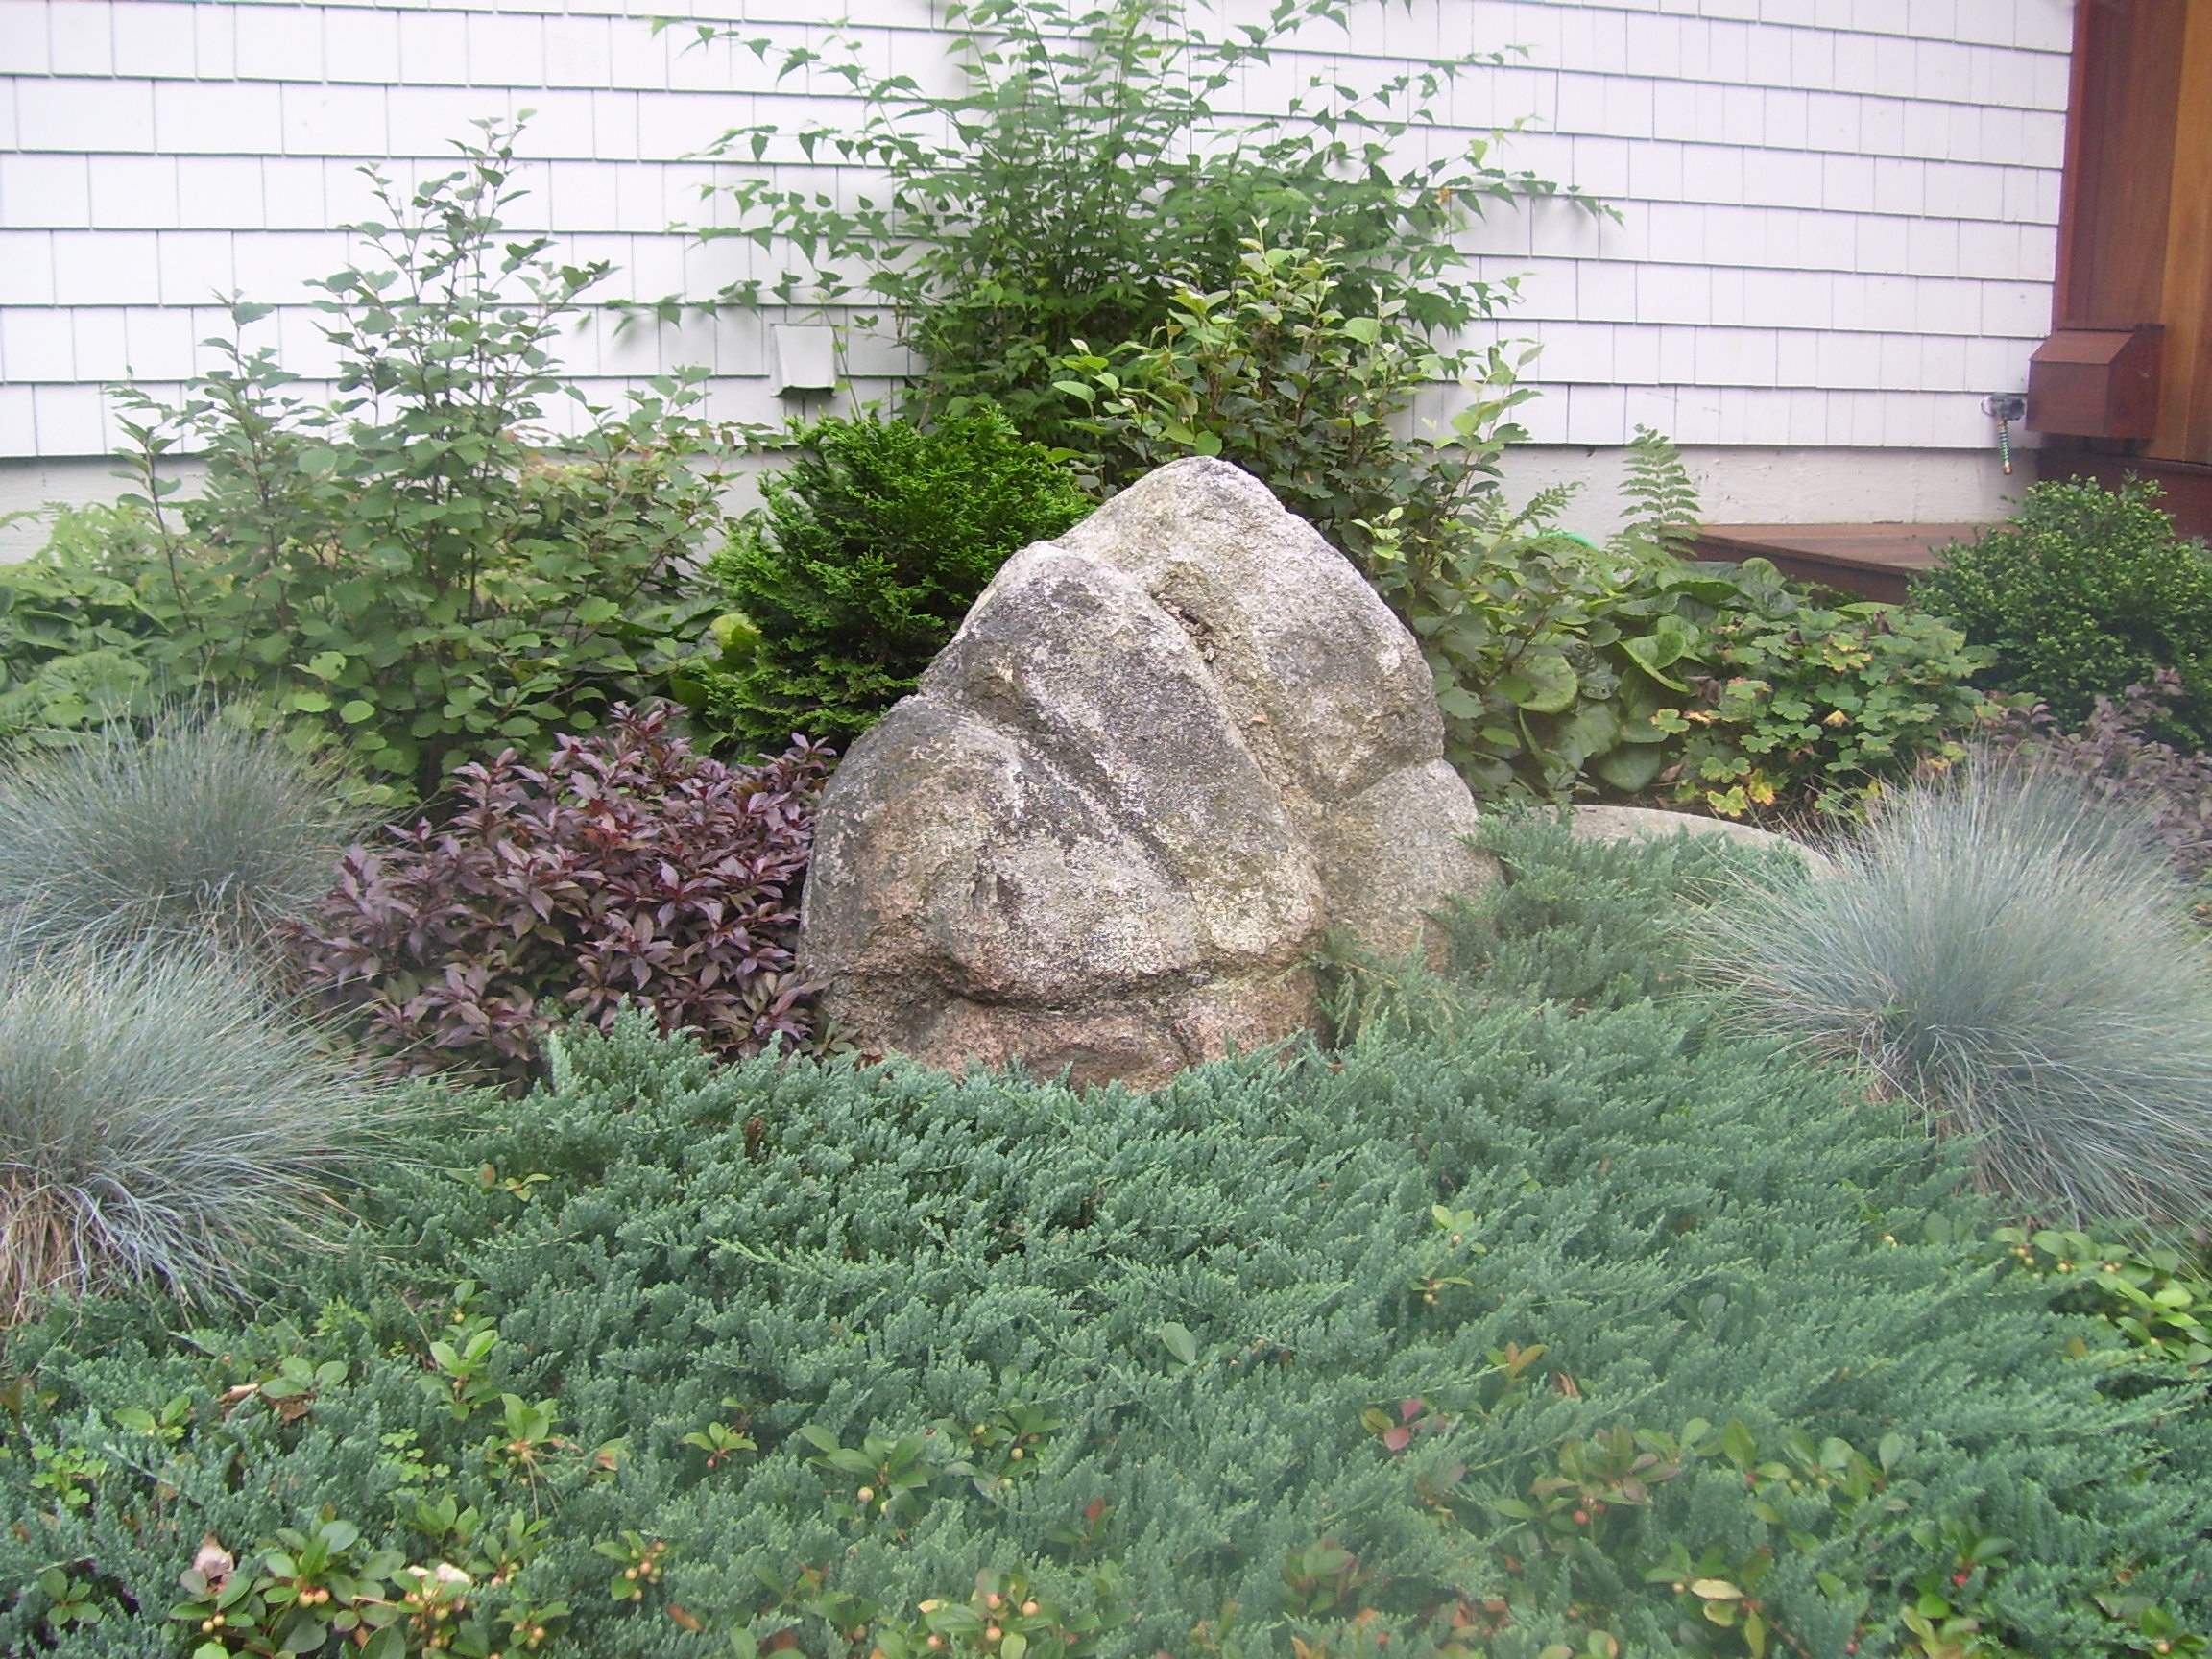 Large rocks for garden indy garden show the way decor for Large decorative rocks for landscaping